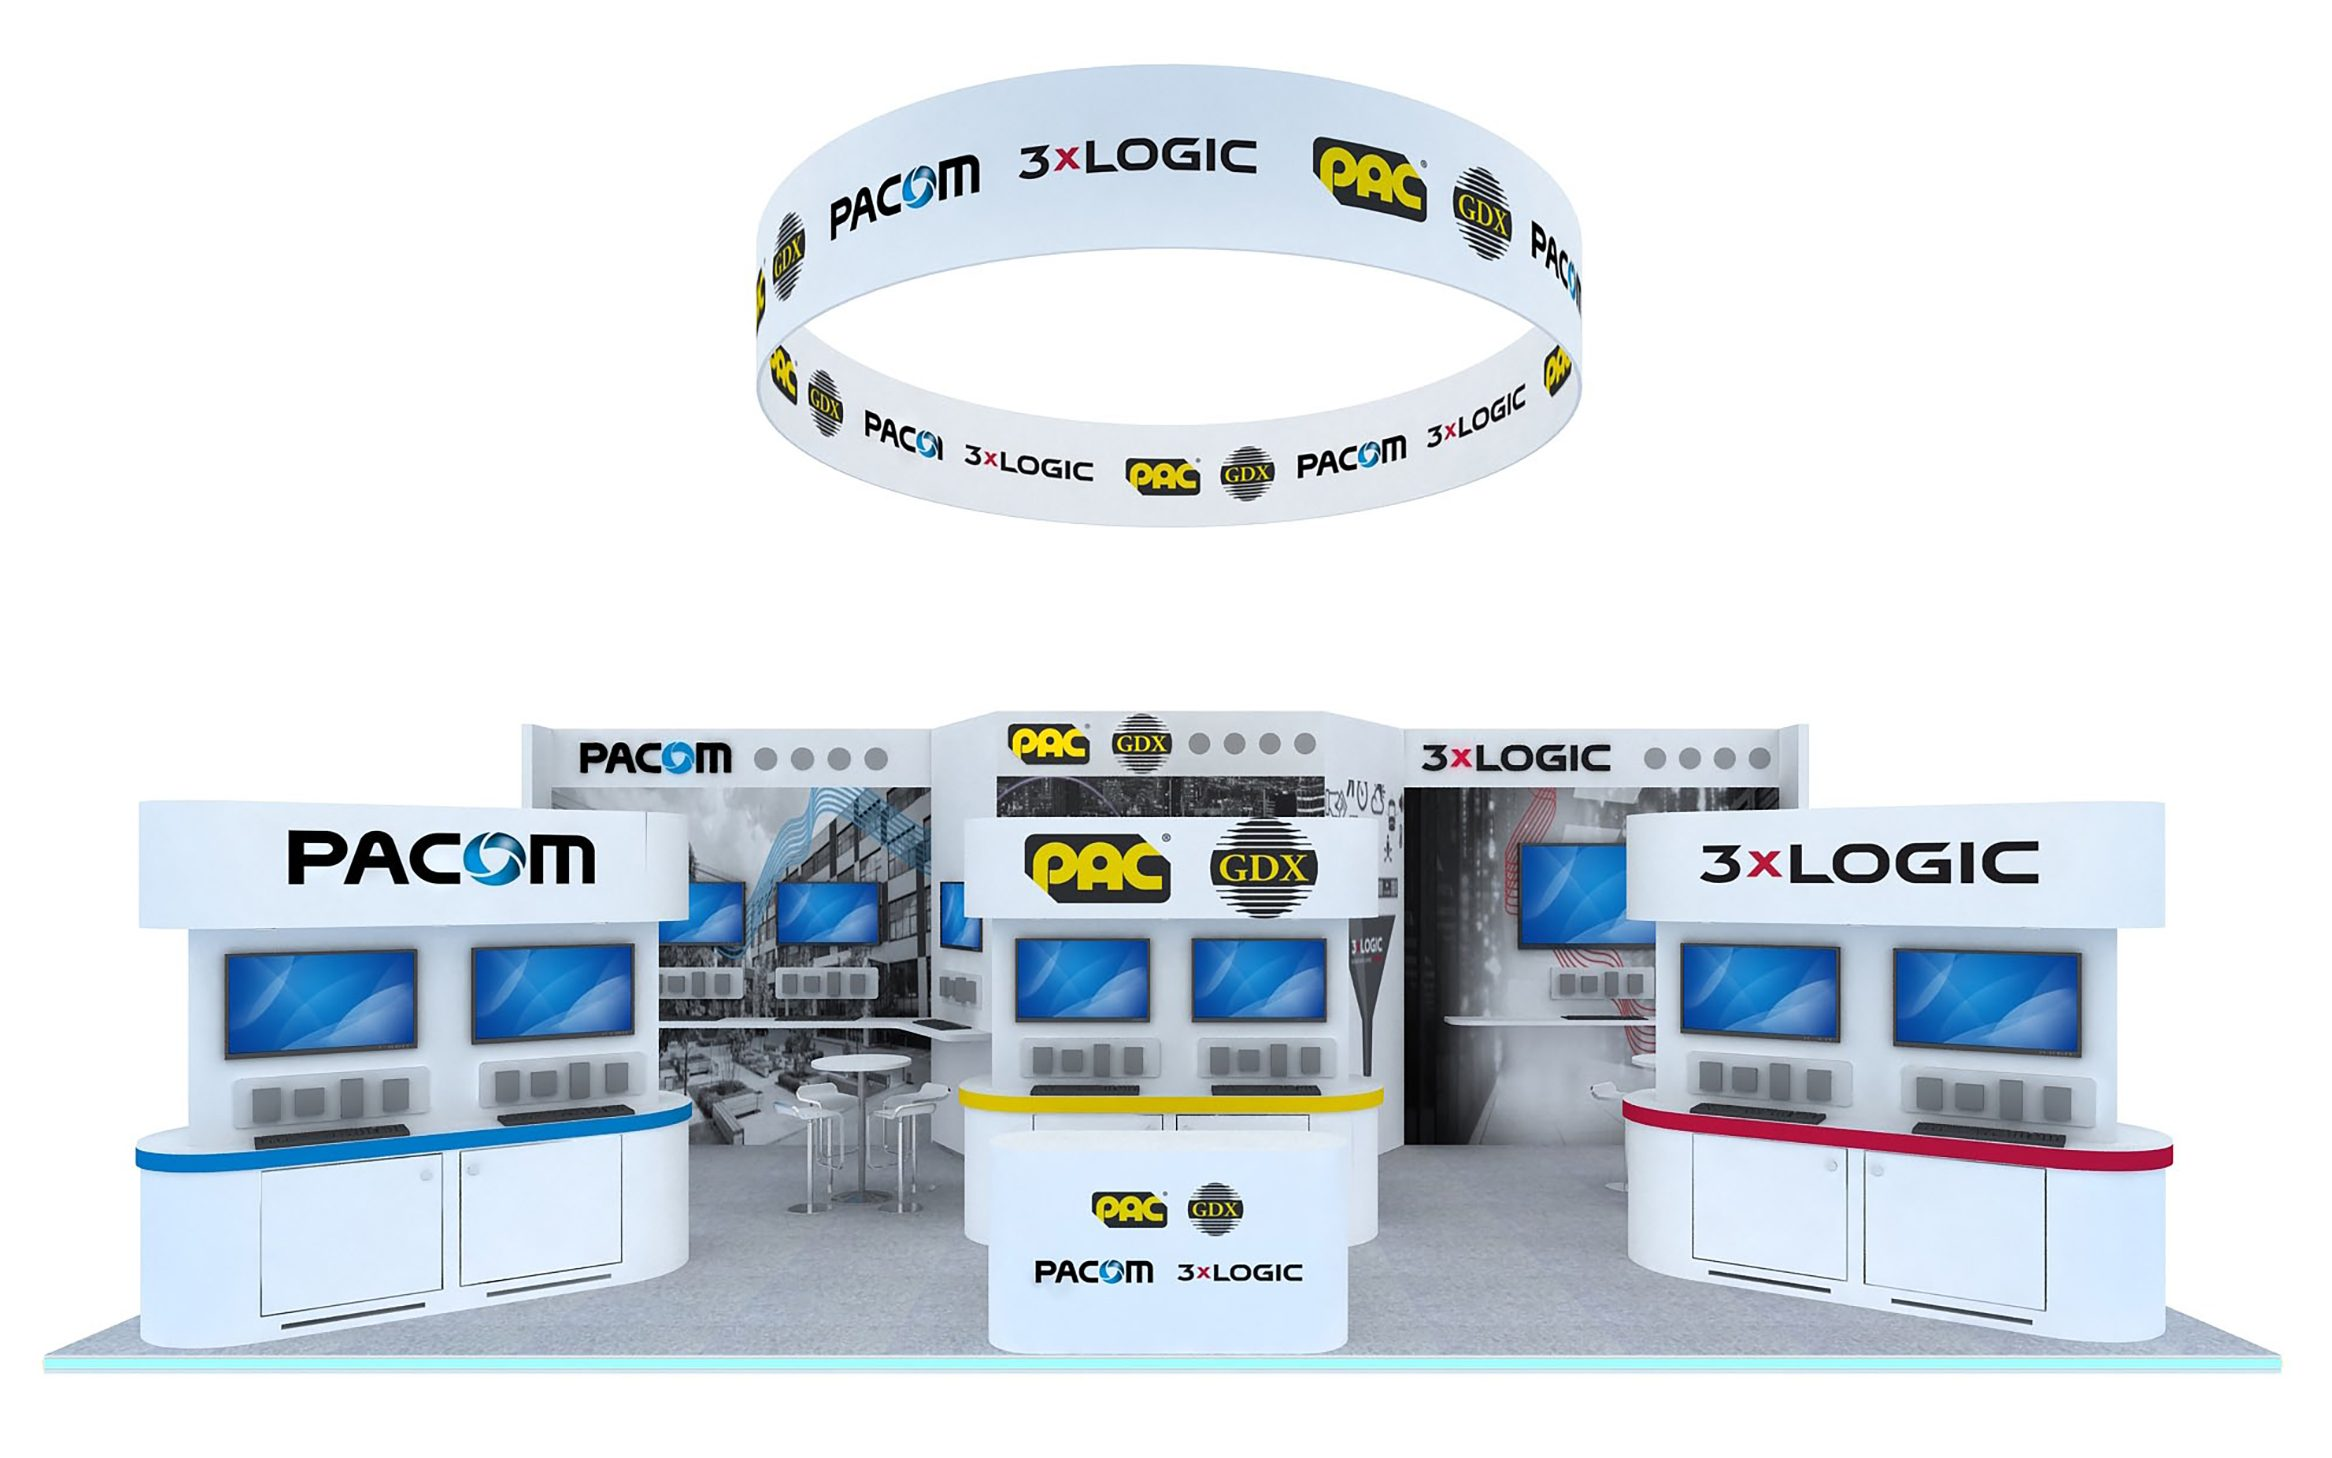 3xLOGIC, PAC GDX and PACOM demonstrate their latest cutting edge security innovations at IFSEC International 2019